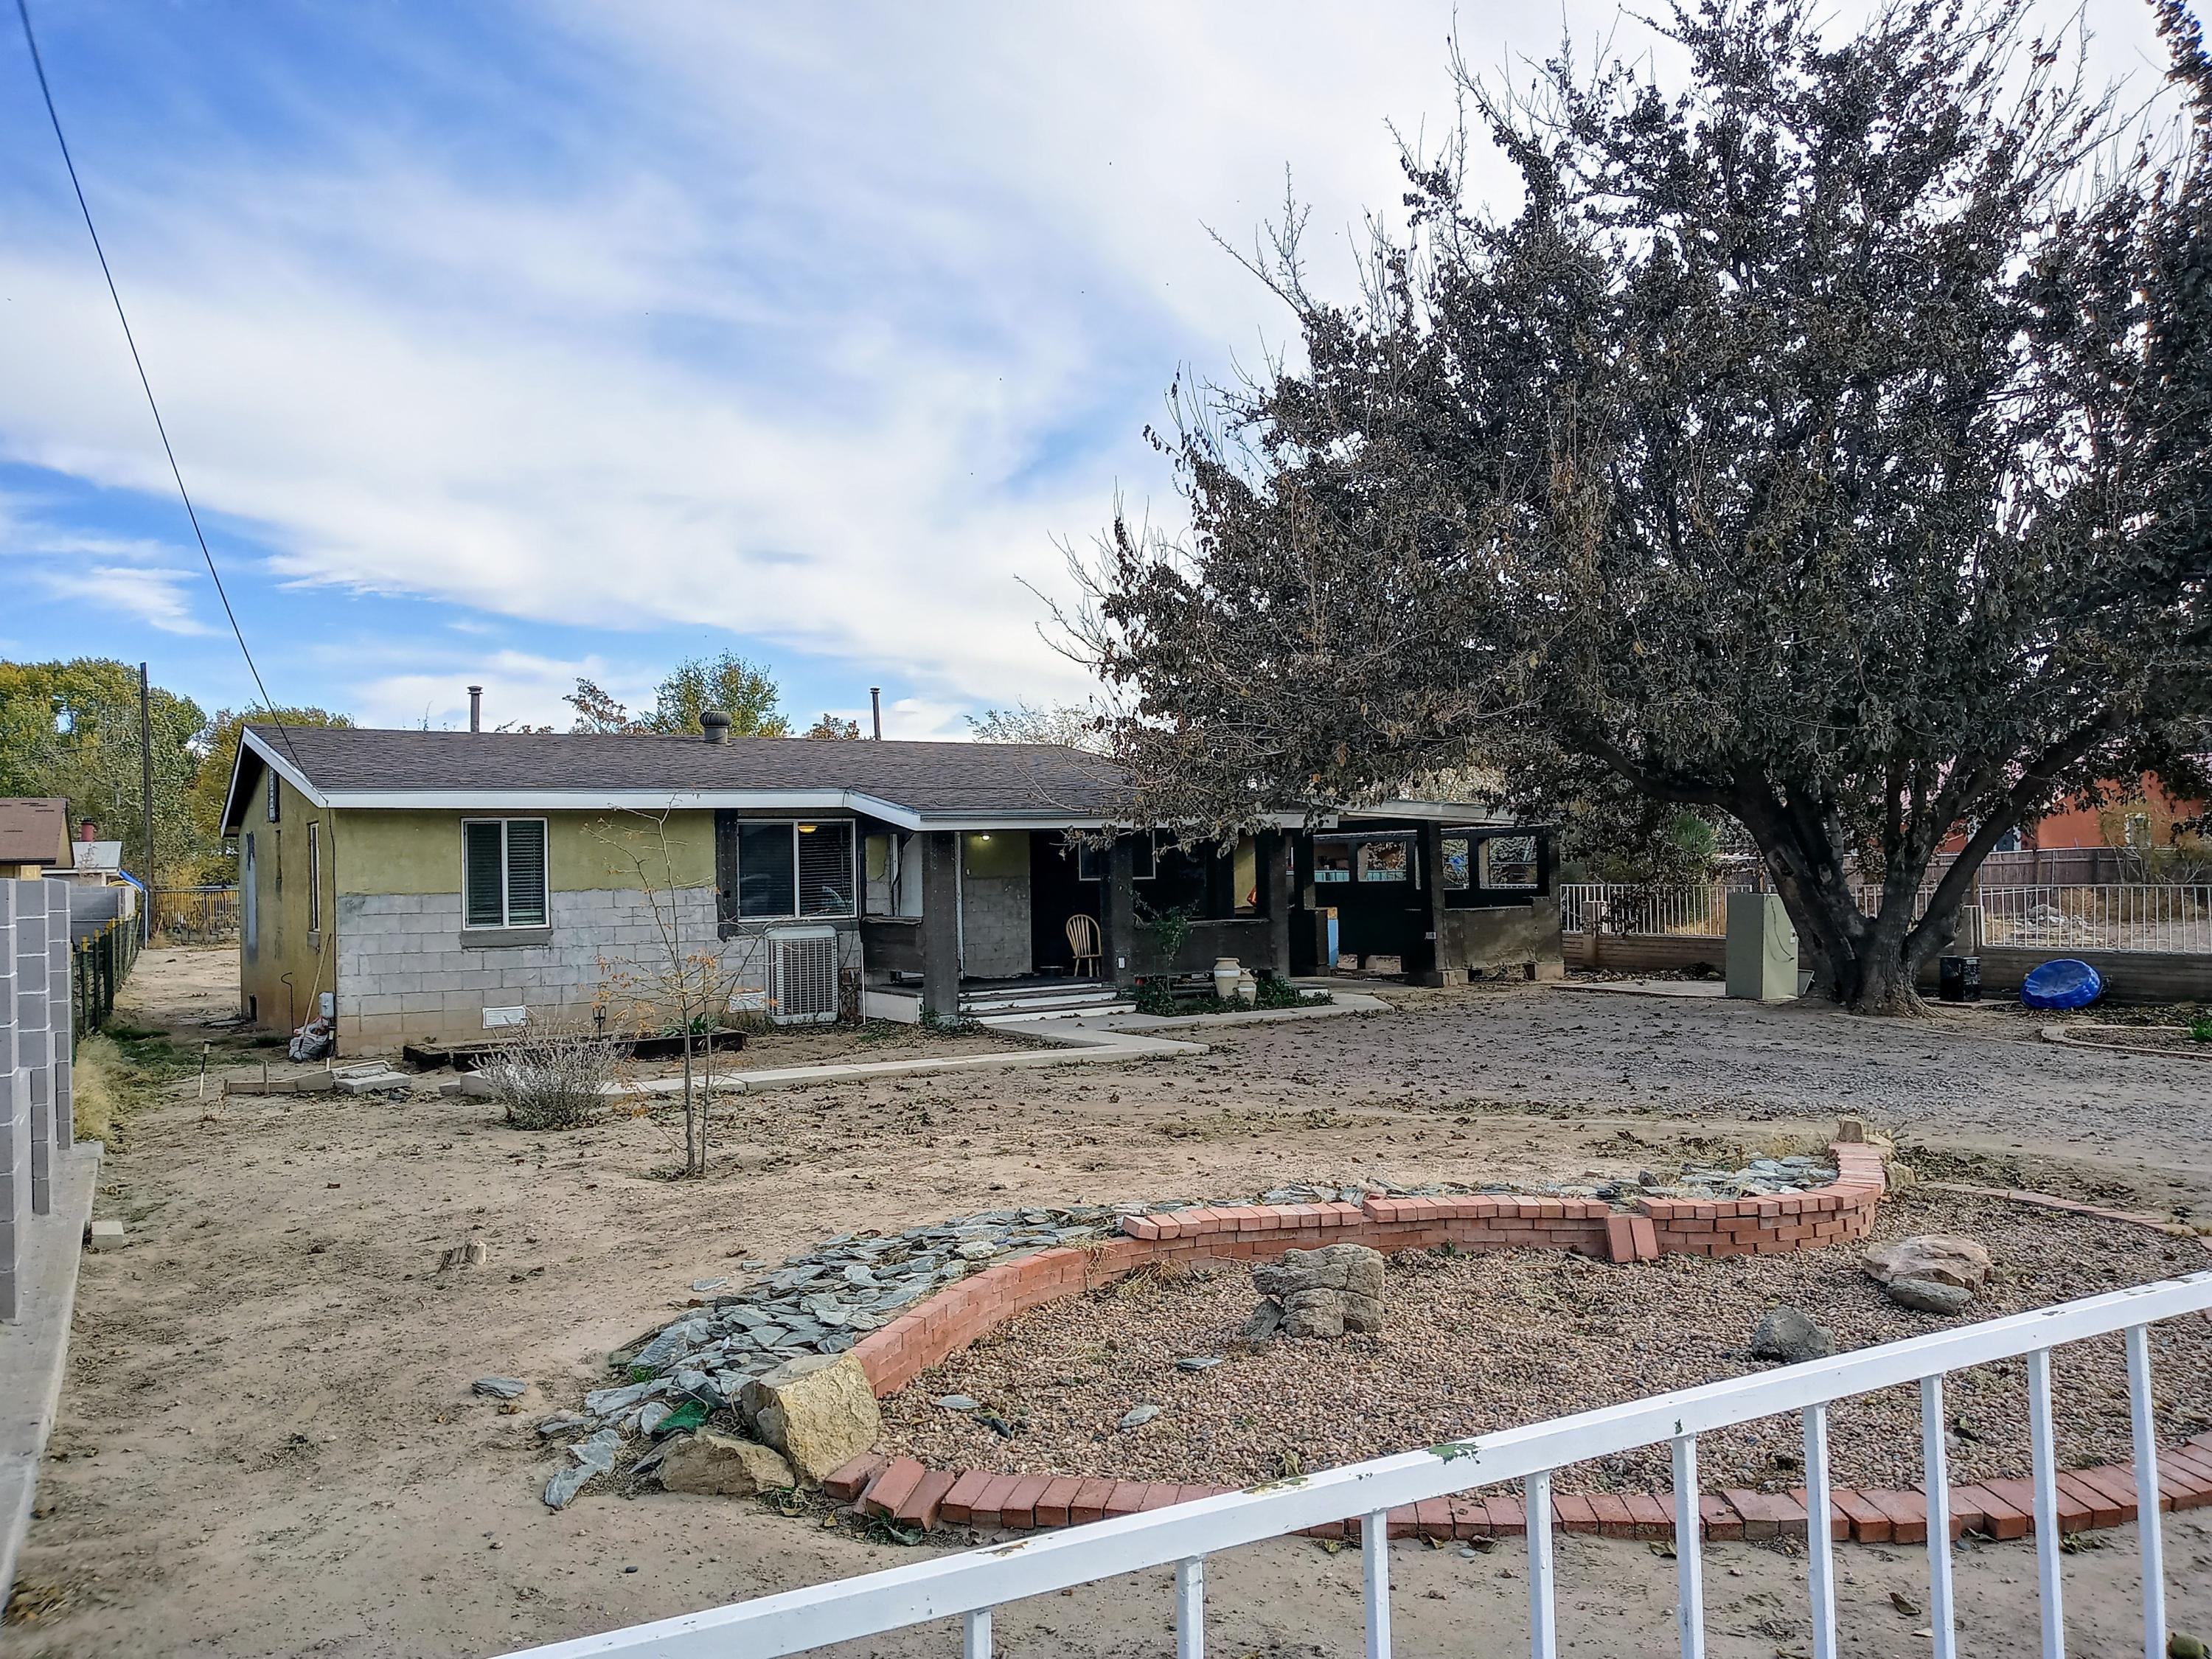 Just listed!! Large lot property in Southwest Albuquerque close to Rio Grande River area for a walk on the bosque. Three-bedroom one-bath home with newer flooring lots of potential on this property make an appointment today!